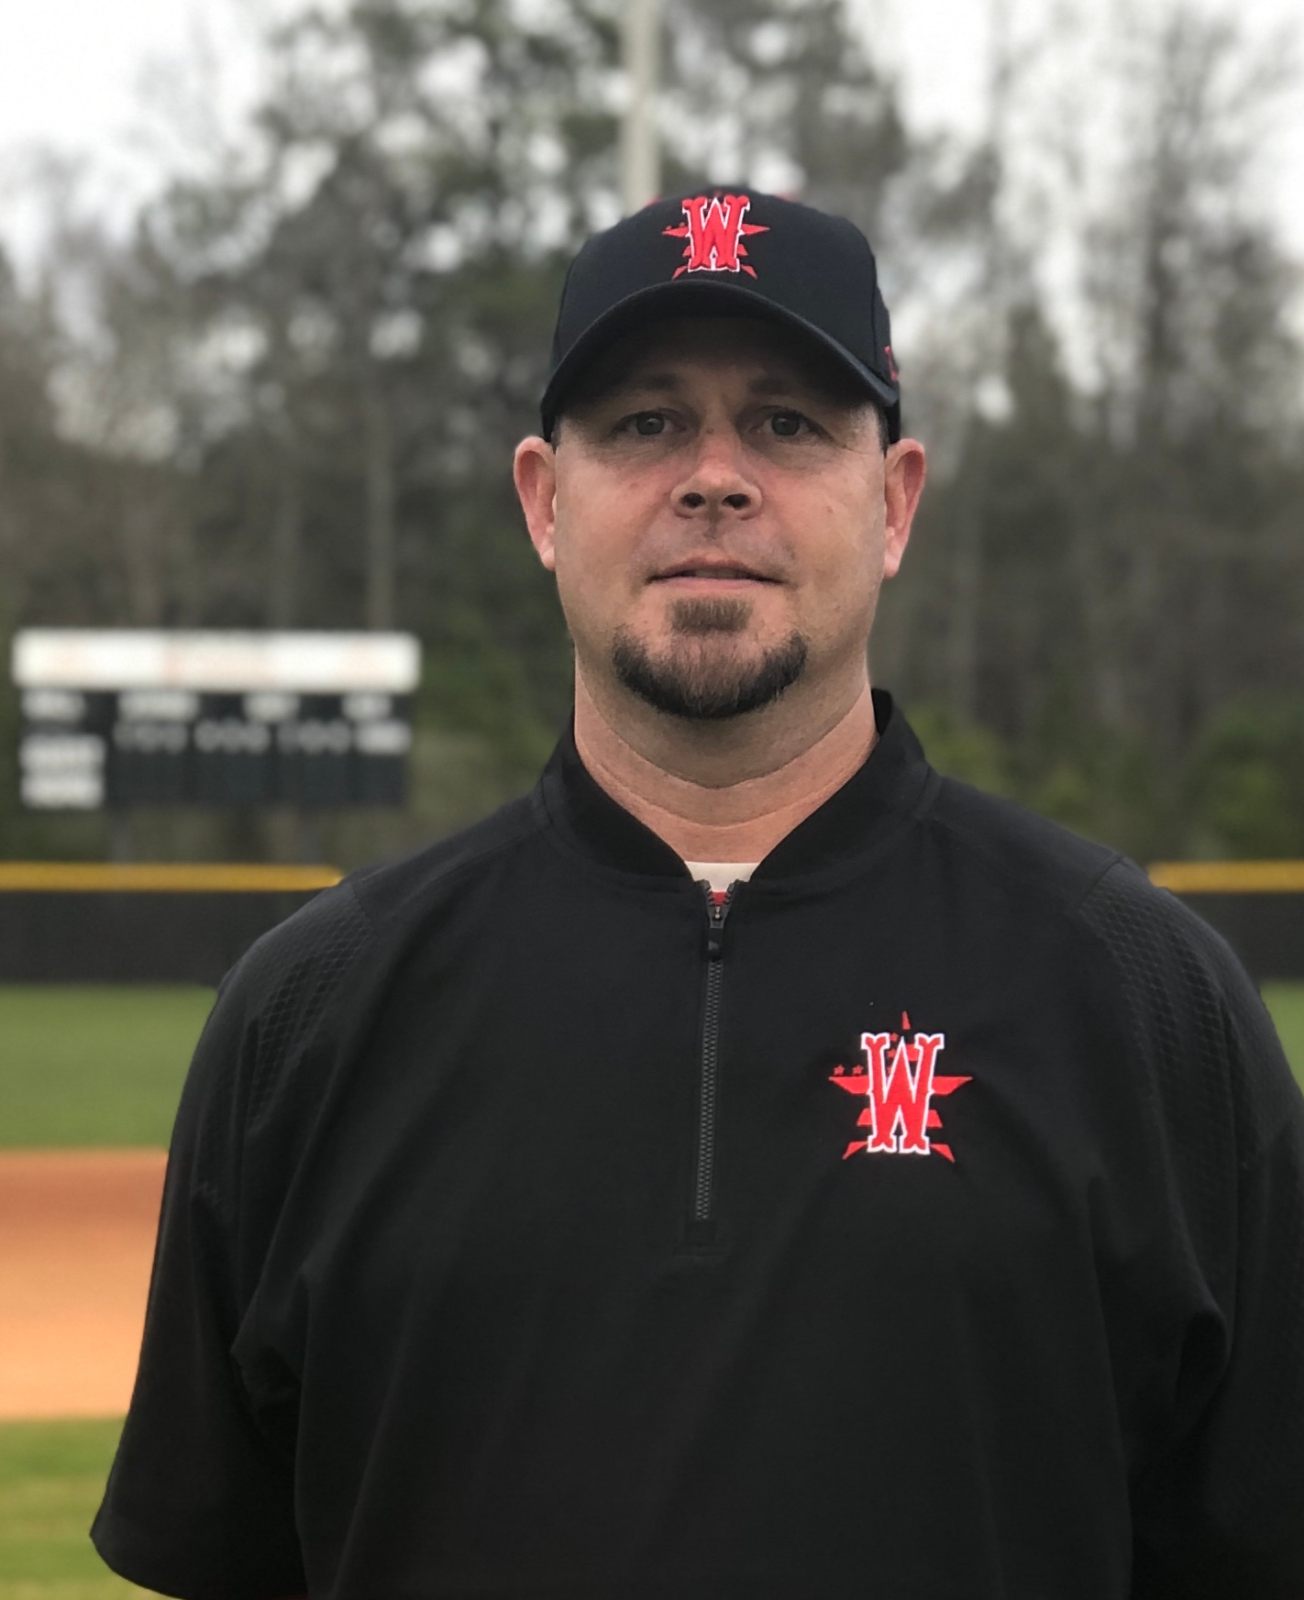 McDermott Named as New Head Baseball Coach